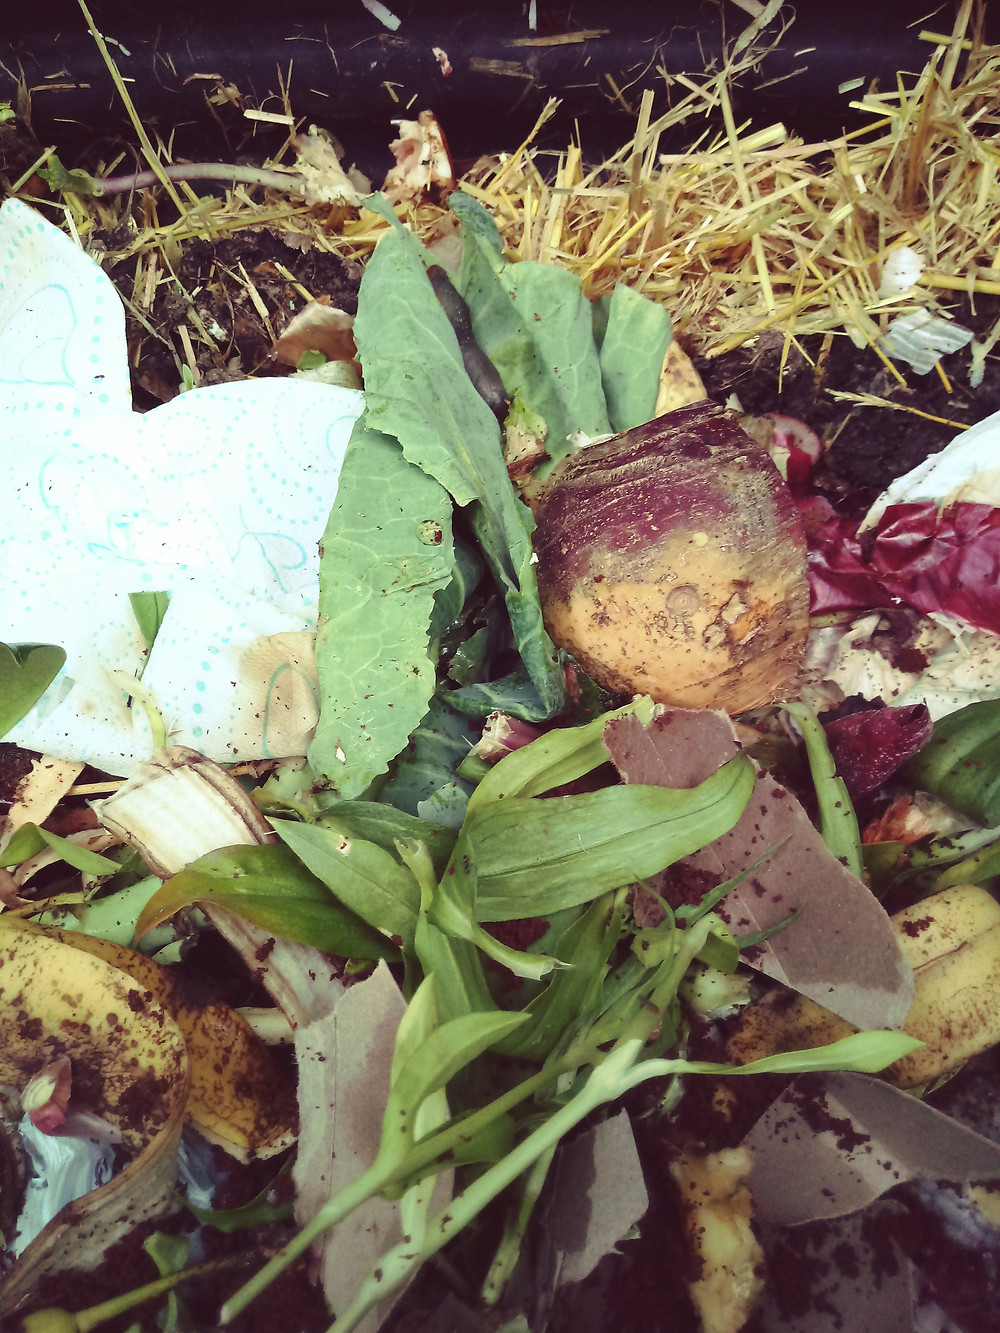 Fresh materials in a compost bin with a slug feeding on a lettuce leaf